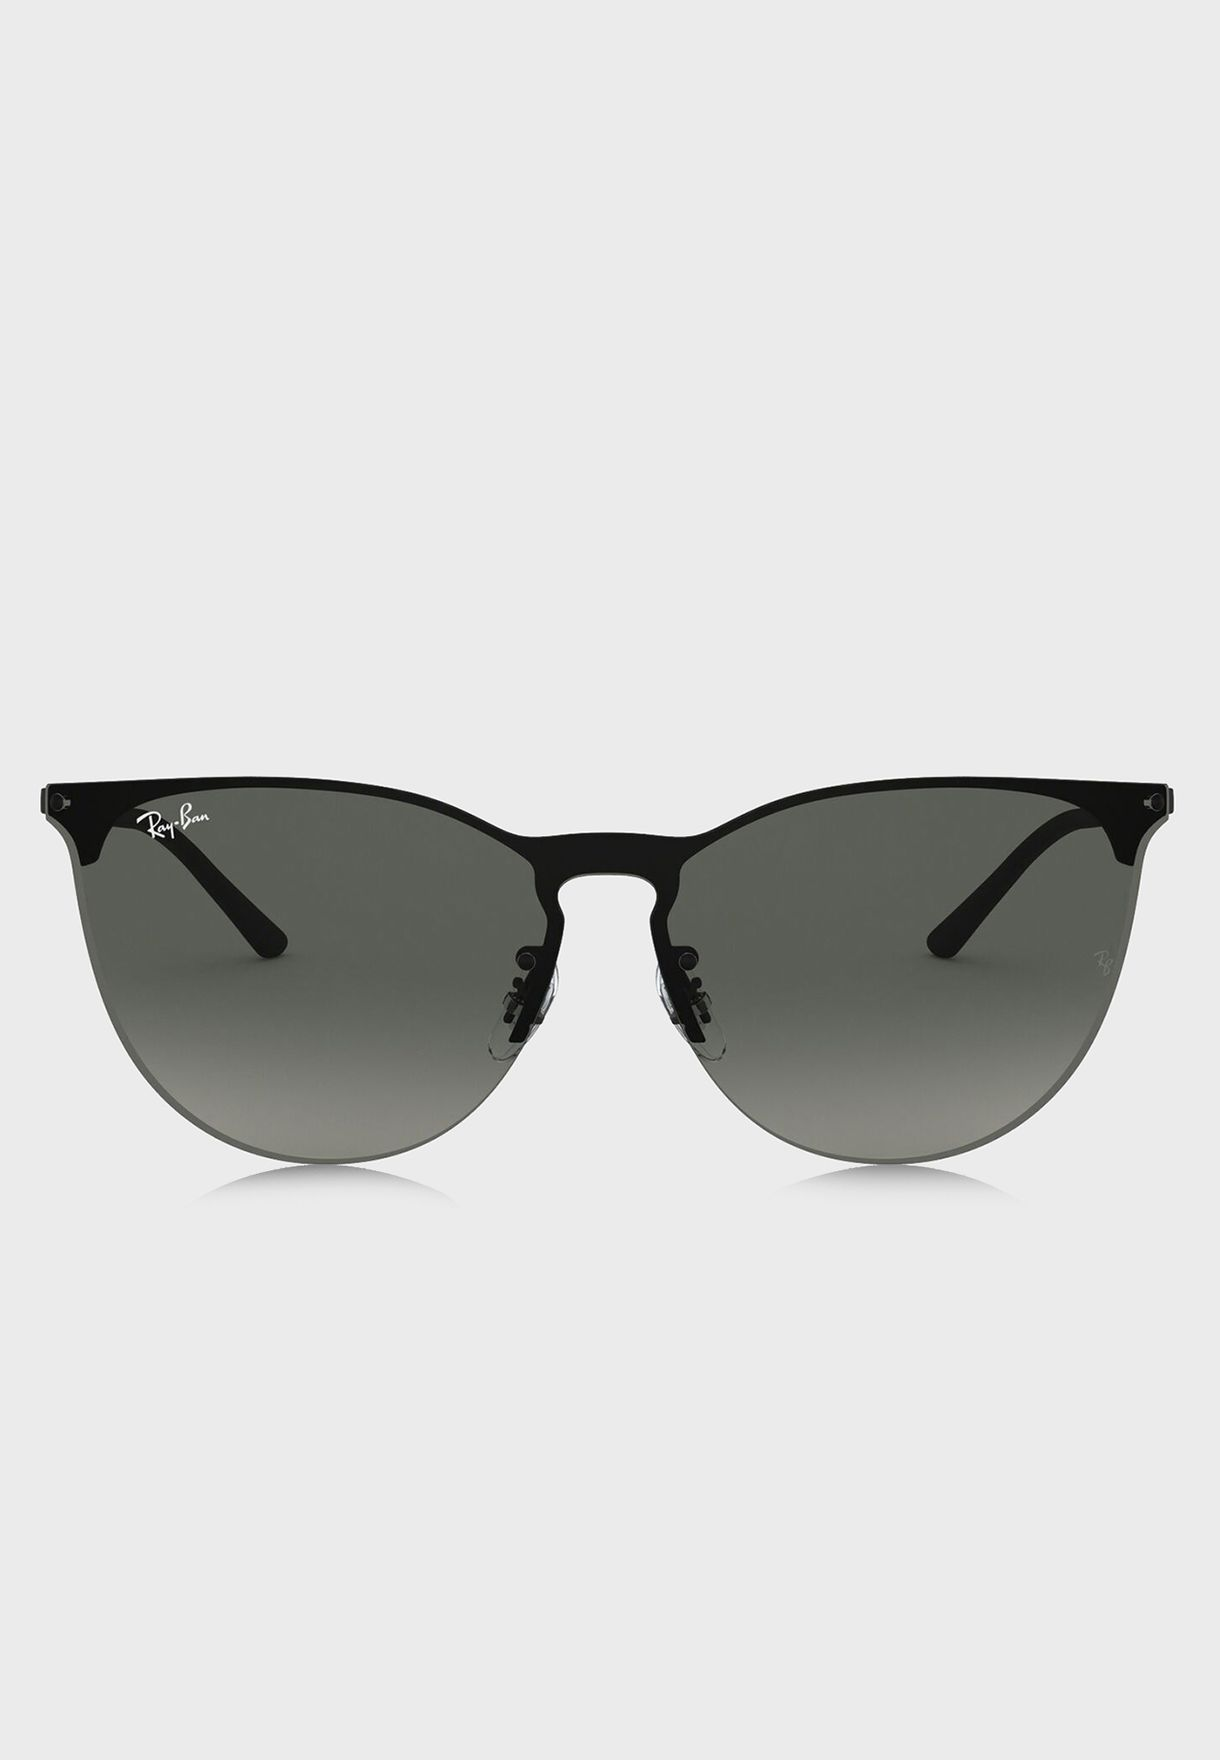 RB3652 Cateye Sunglasses